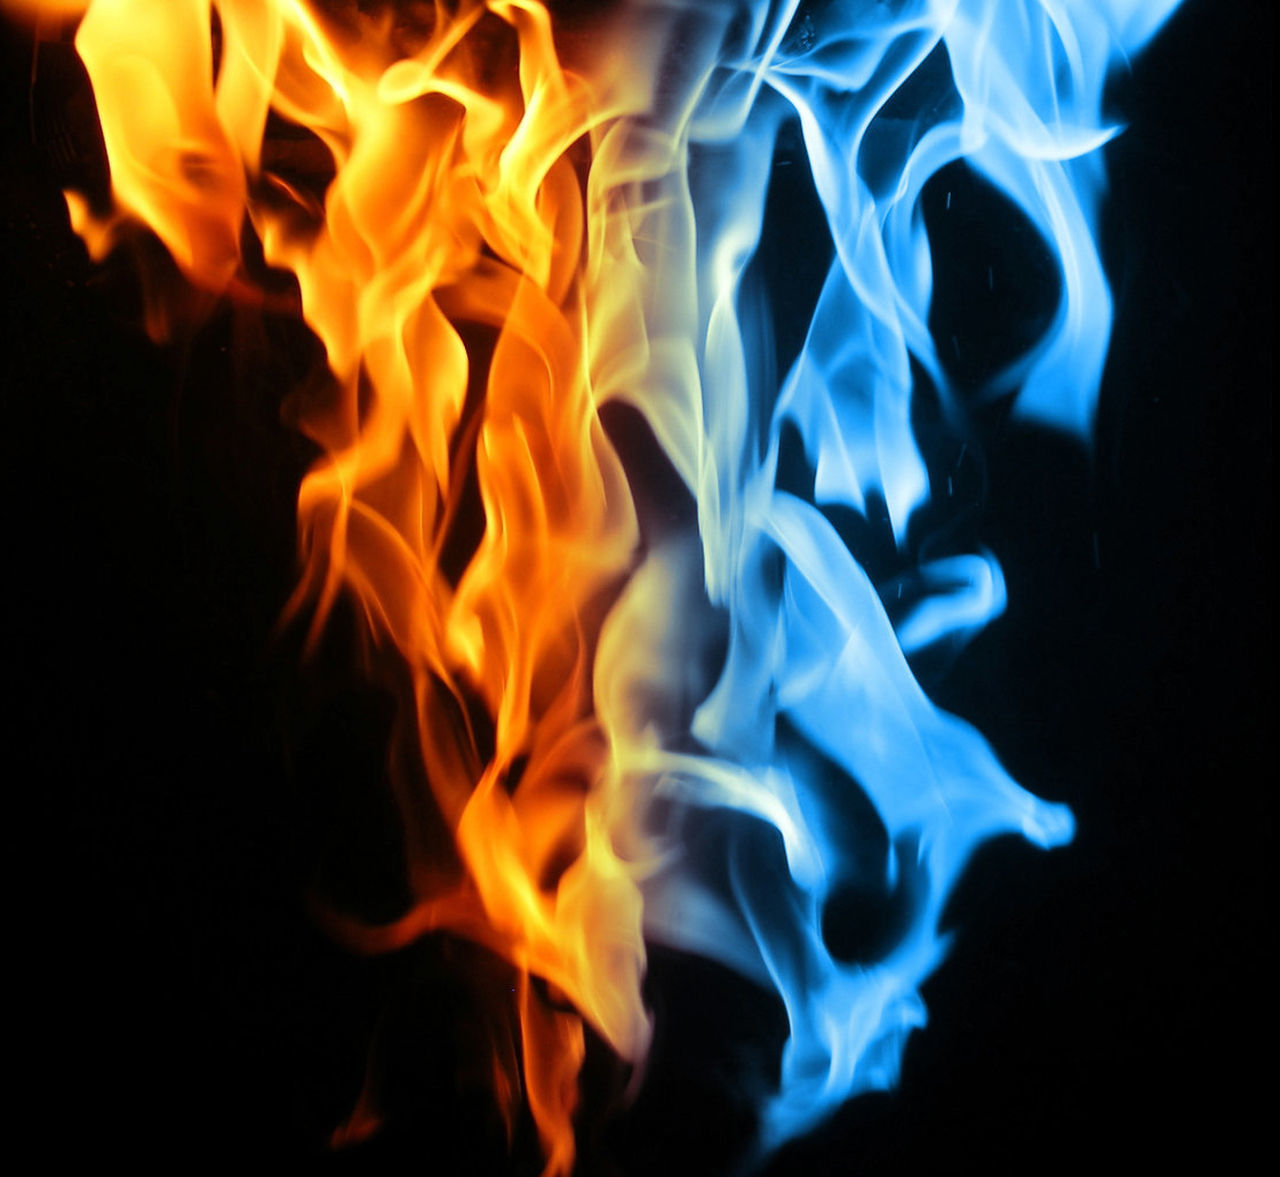 Made by me. Abstract Black Background Burning Close-up Design Fire Flame Flames Heat - Temperature No People Webdesign